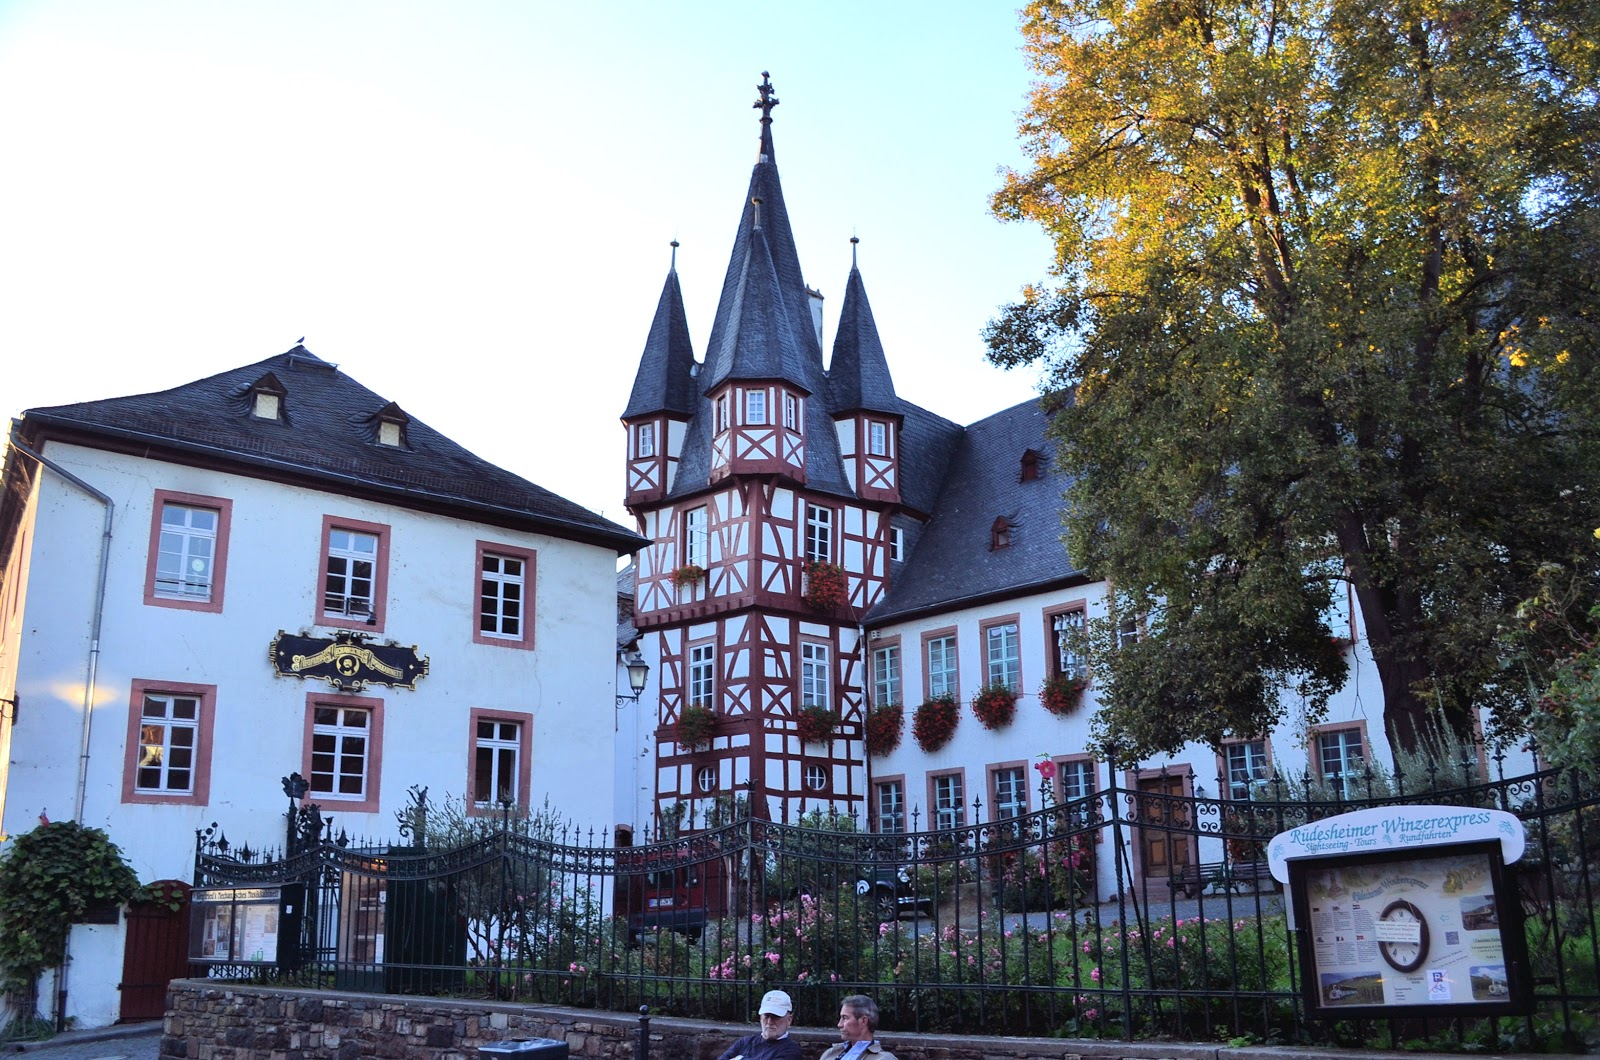 One of the most magical places in Rüdesheim—Siegfried's Mechanical Music Cabinet Museum.